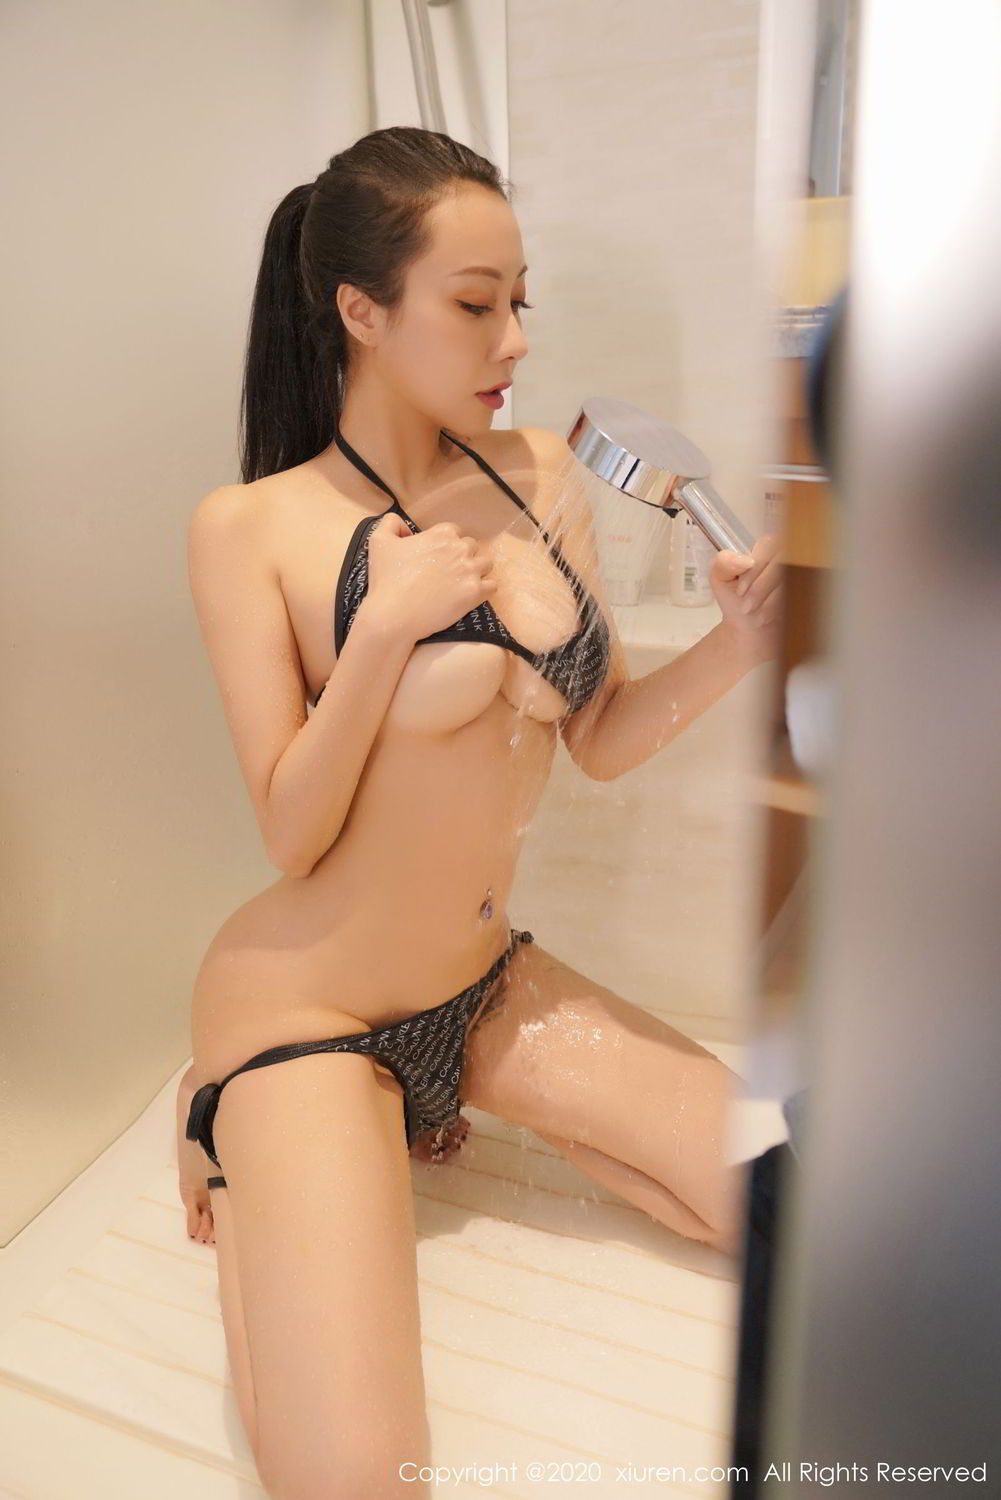 [XiuRen] Vol.2264 Song Guo Er 36P, Bathroom, Bikini, Song Guo Er, Wet, Xiuren